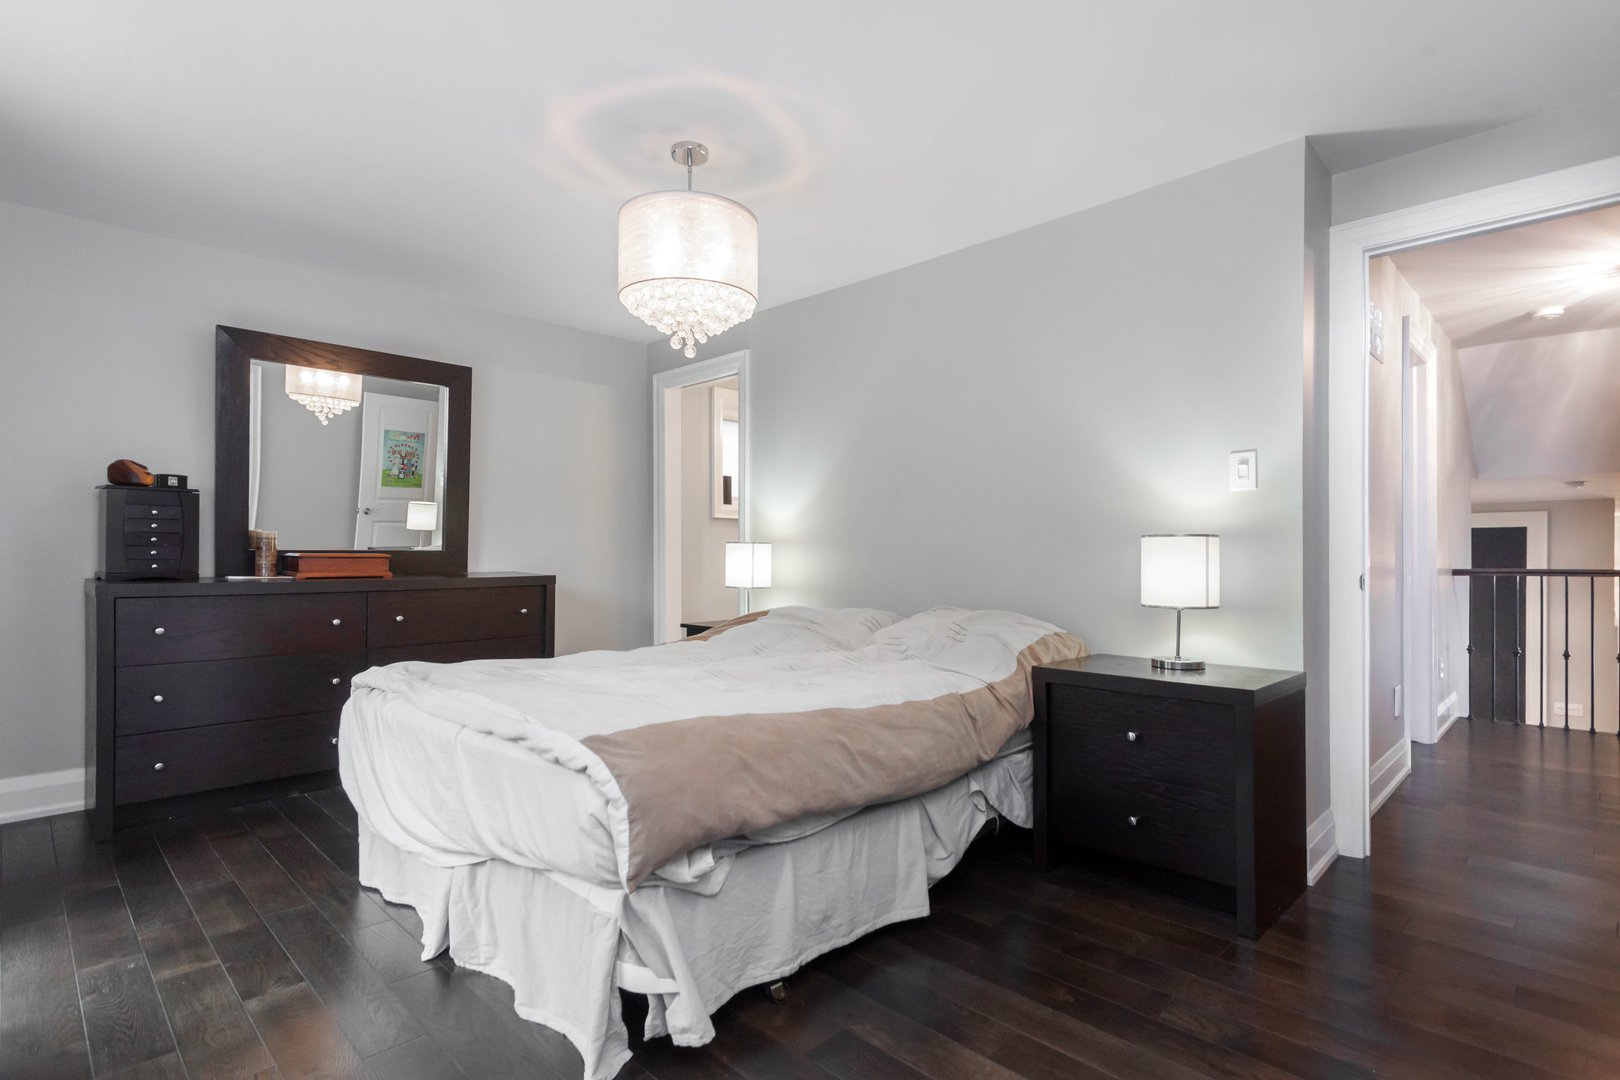 House for rent at 84 Laurel Avenue, Etobicoke, ON. This is the bedroom with hardwood floor.